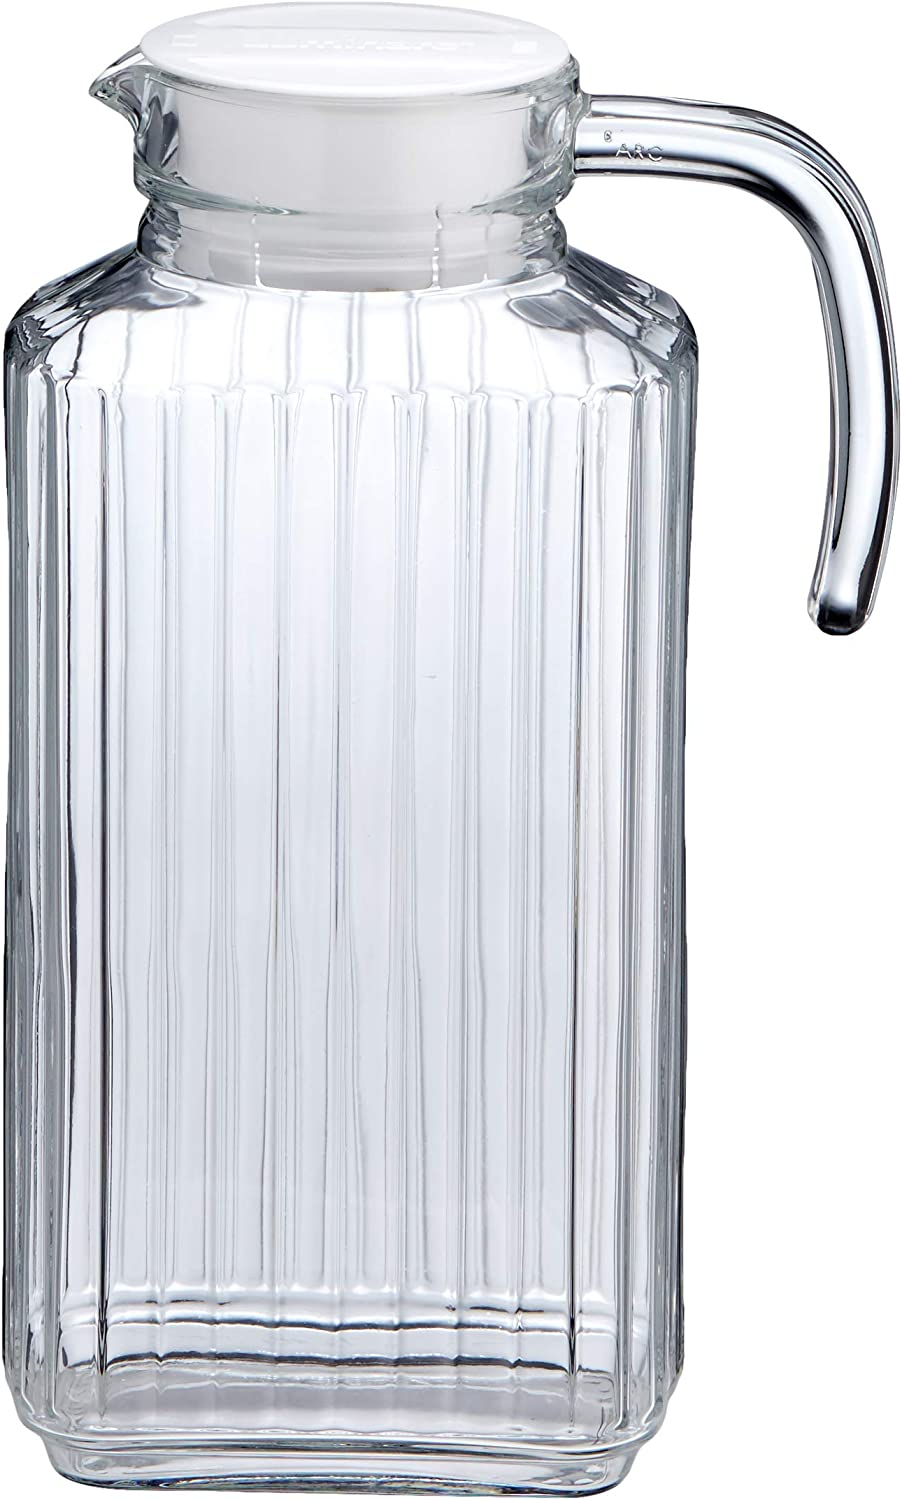 AmazonBasics 57-Ounce Glass Beverage Jug with Handle